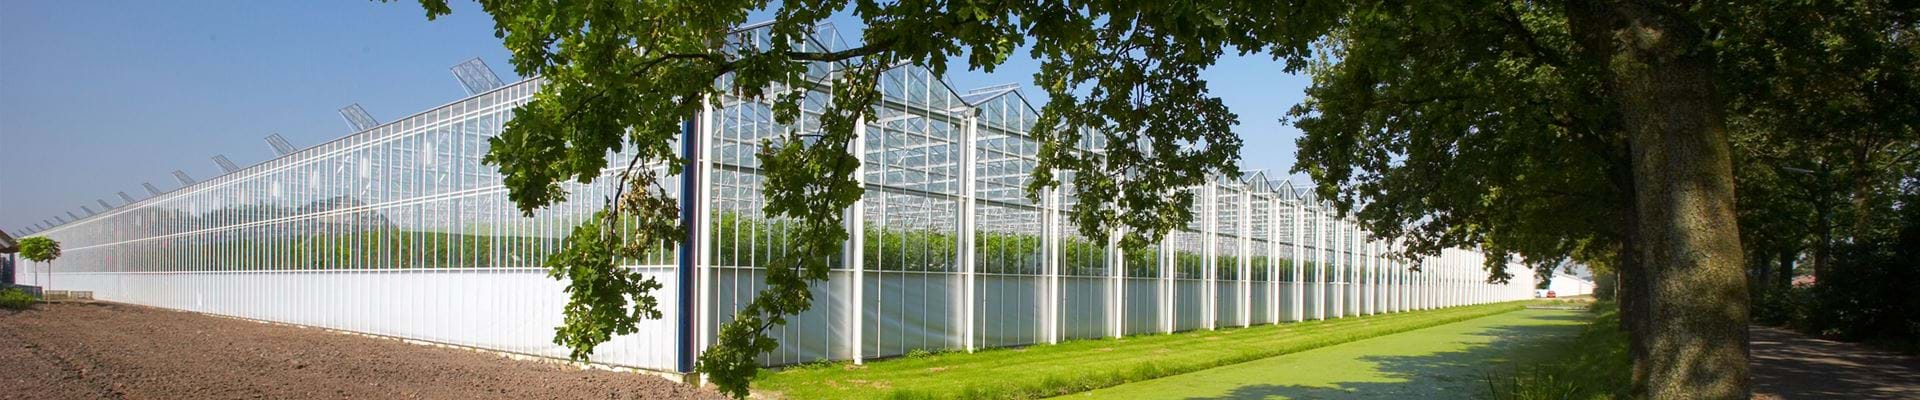 Greenhouse horticulture - Gakon Horticultural Projects - Turn-key Greenhouse Projects